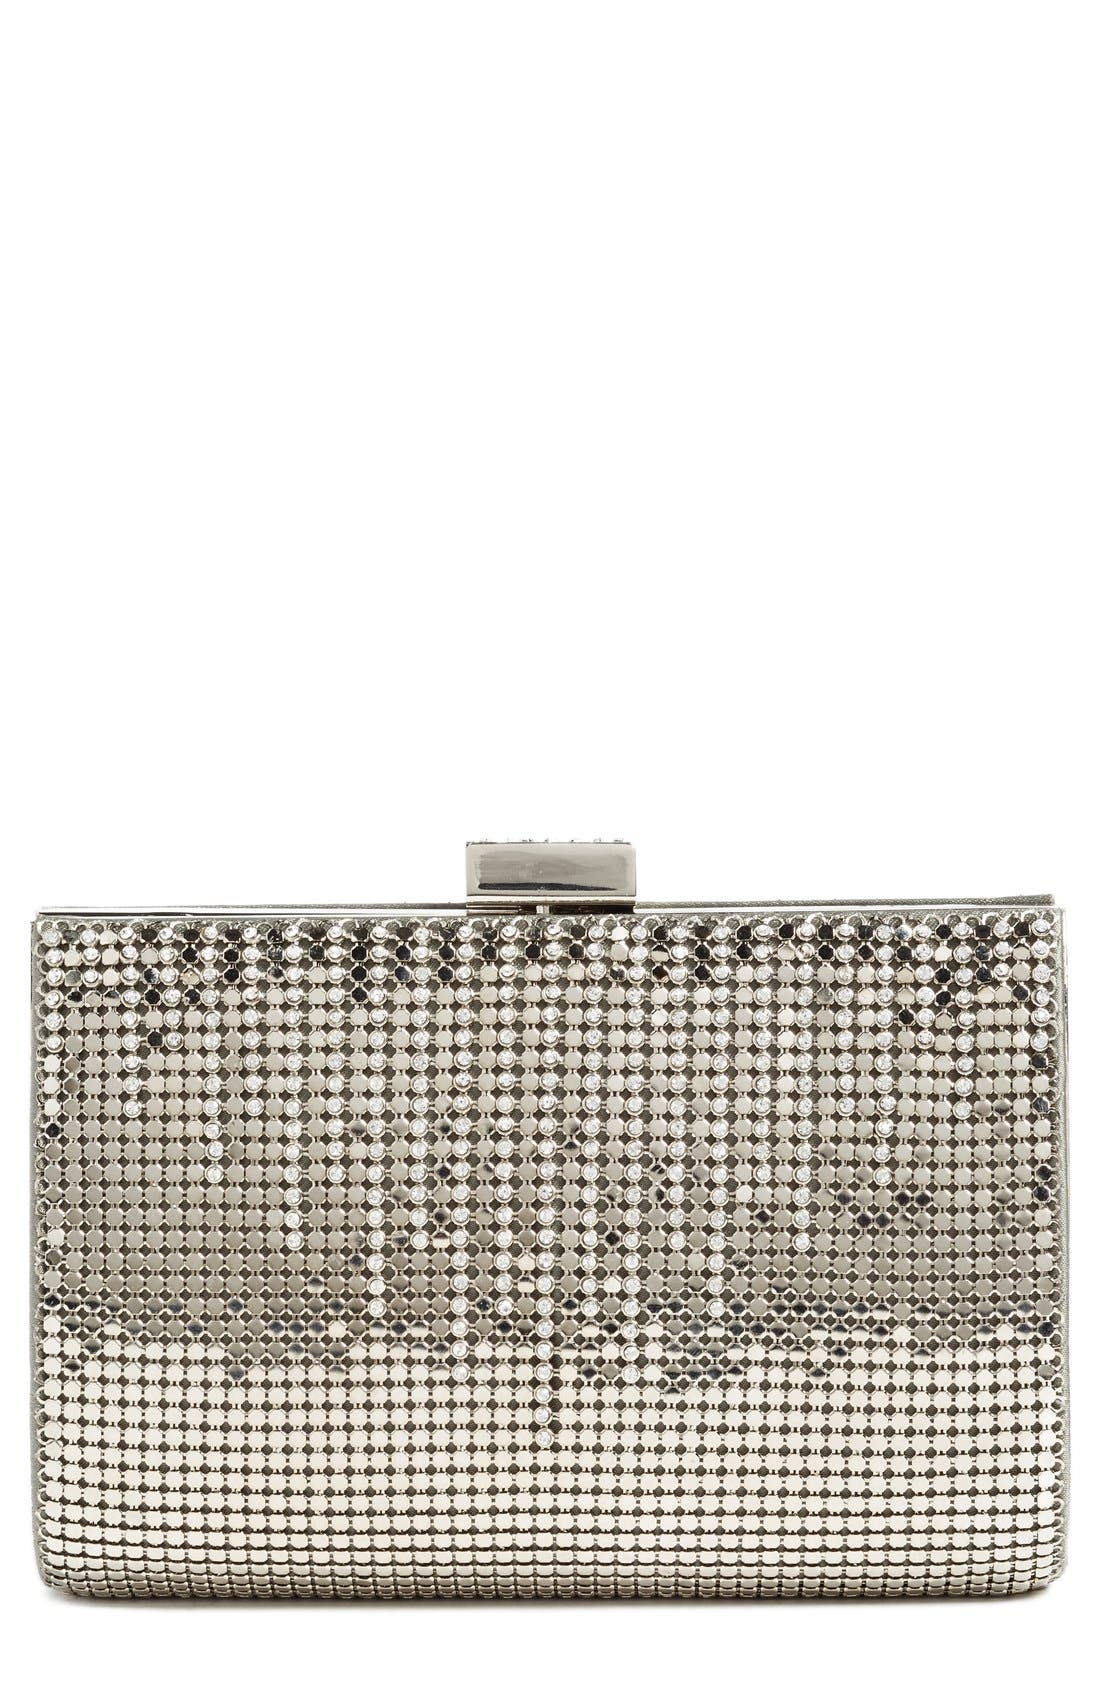 'DIAMOND DRIPS' EVENING CLUTCH - METALLIC